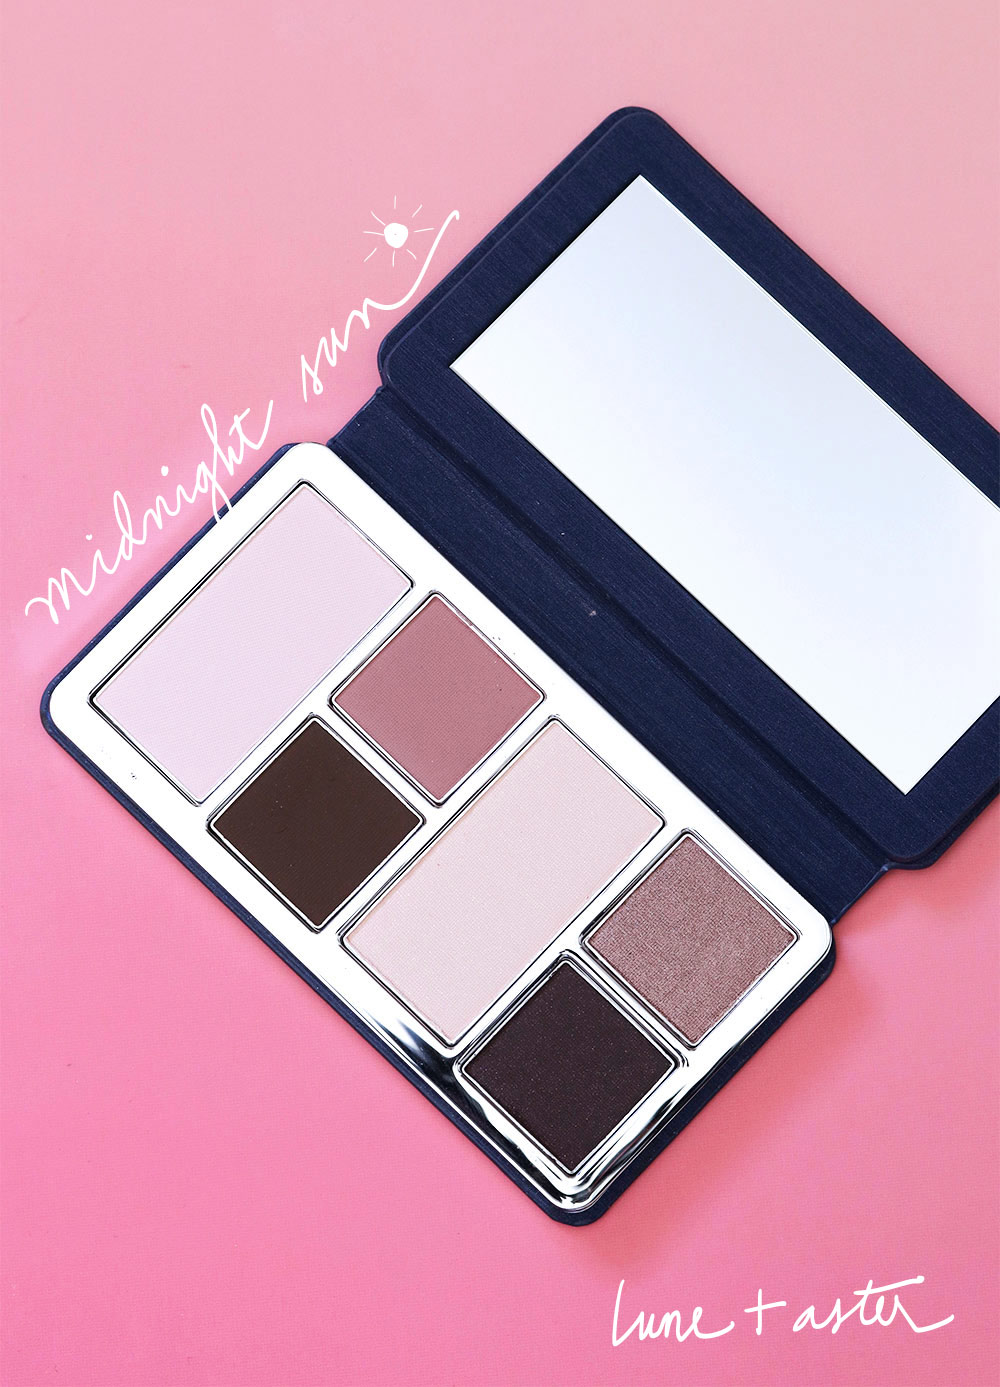 lune aster midnight sun eyeshadow palette final